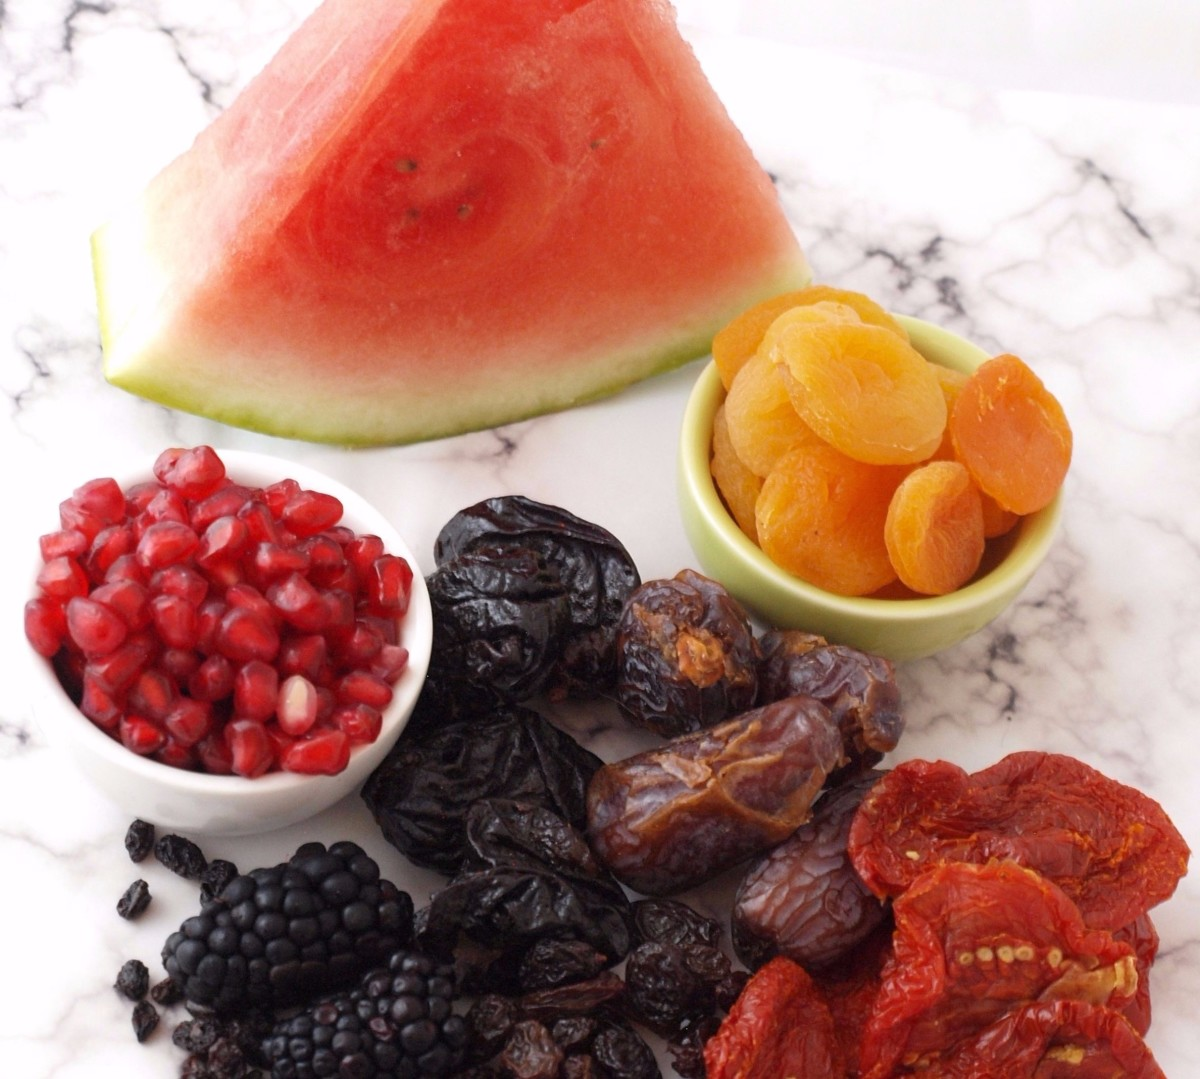 Top 10 Fruits High in Iron to Increase Haemoglobin Levels